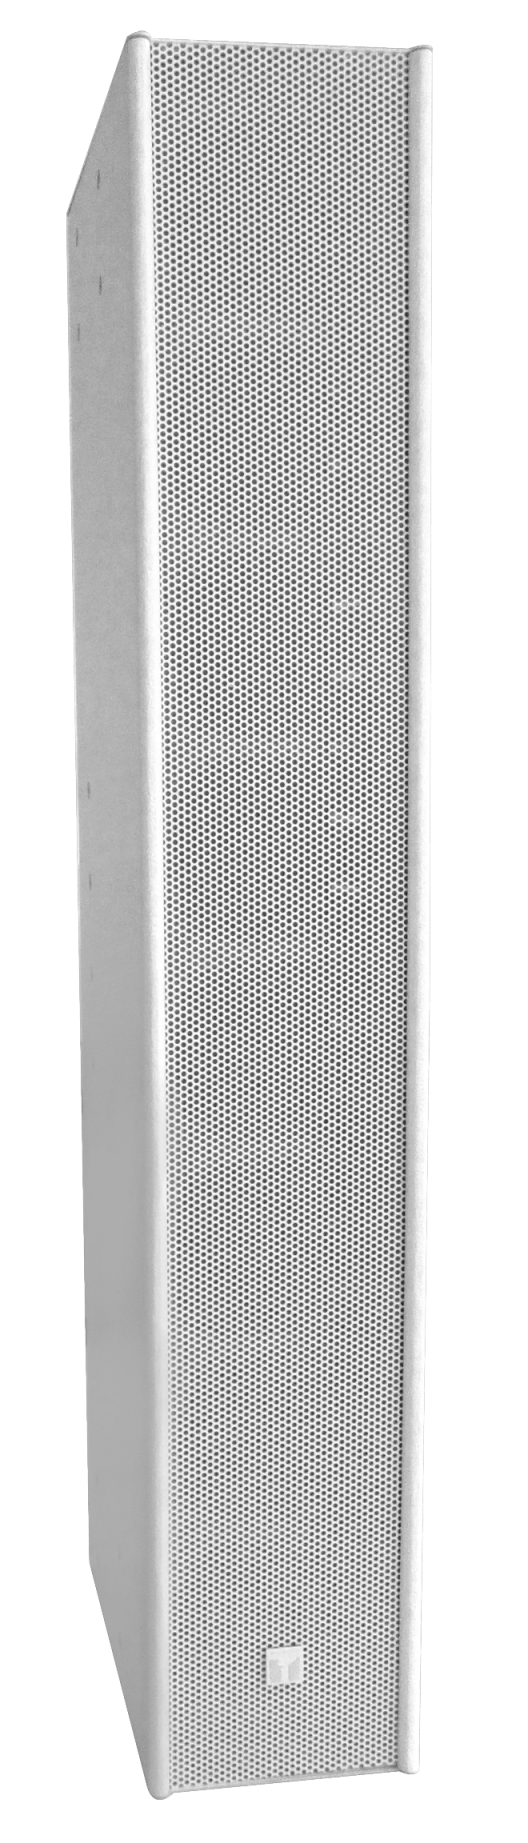 ZS-S240CW-AS Slim Array Speaker